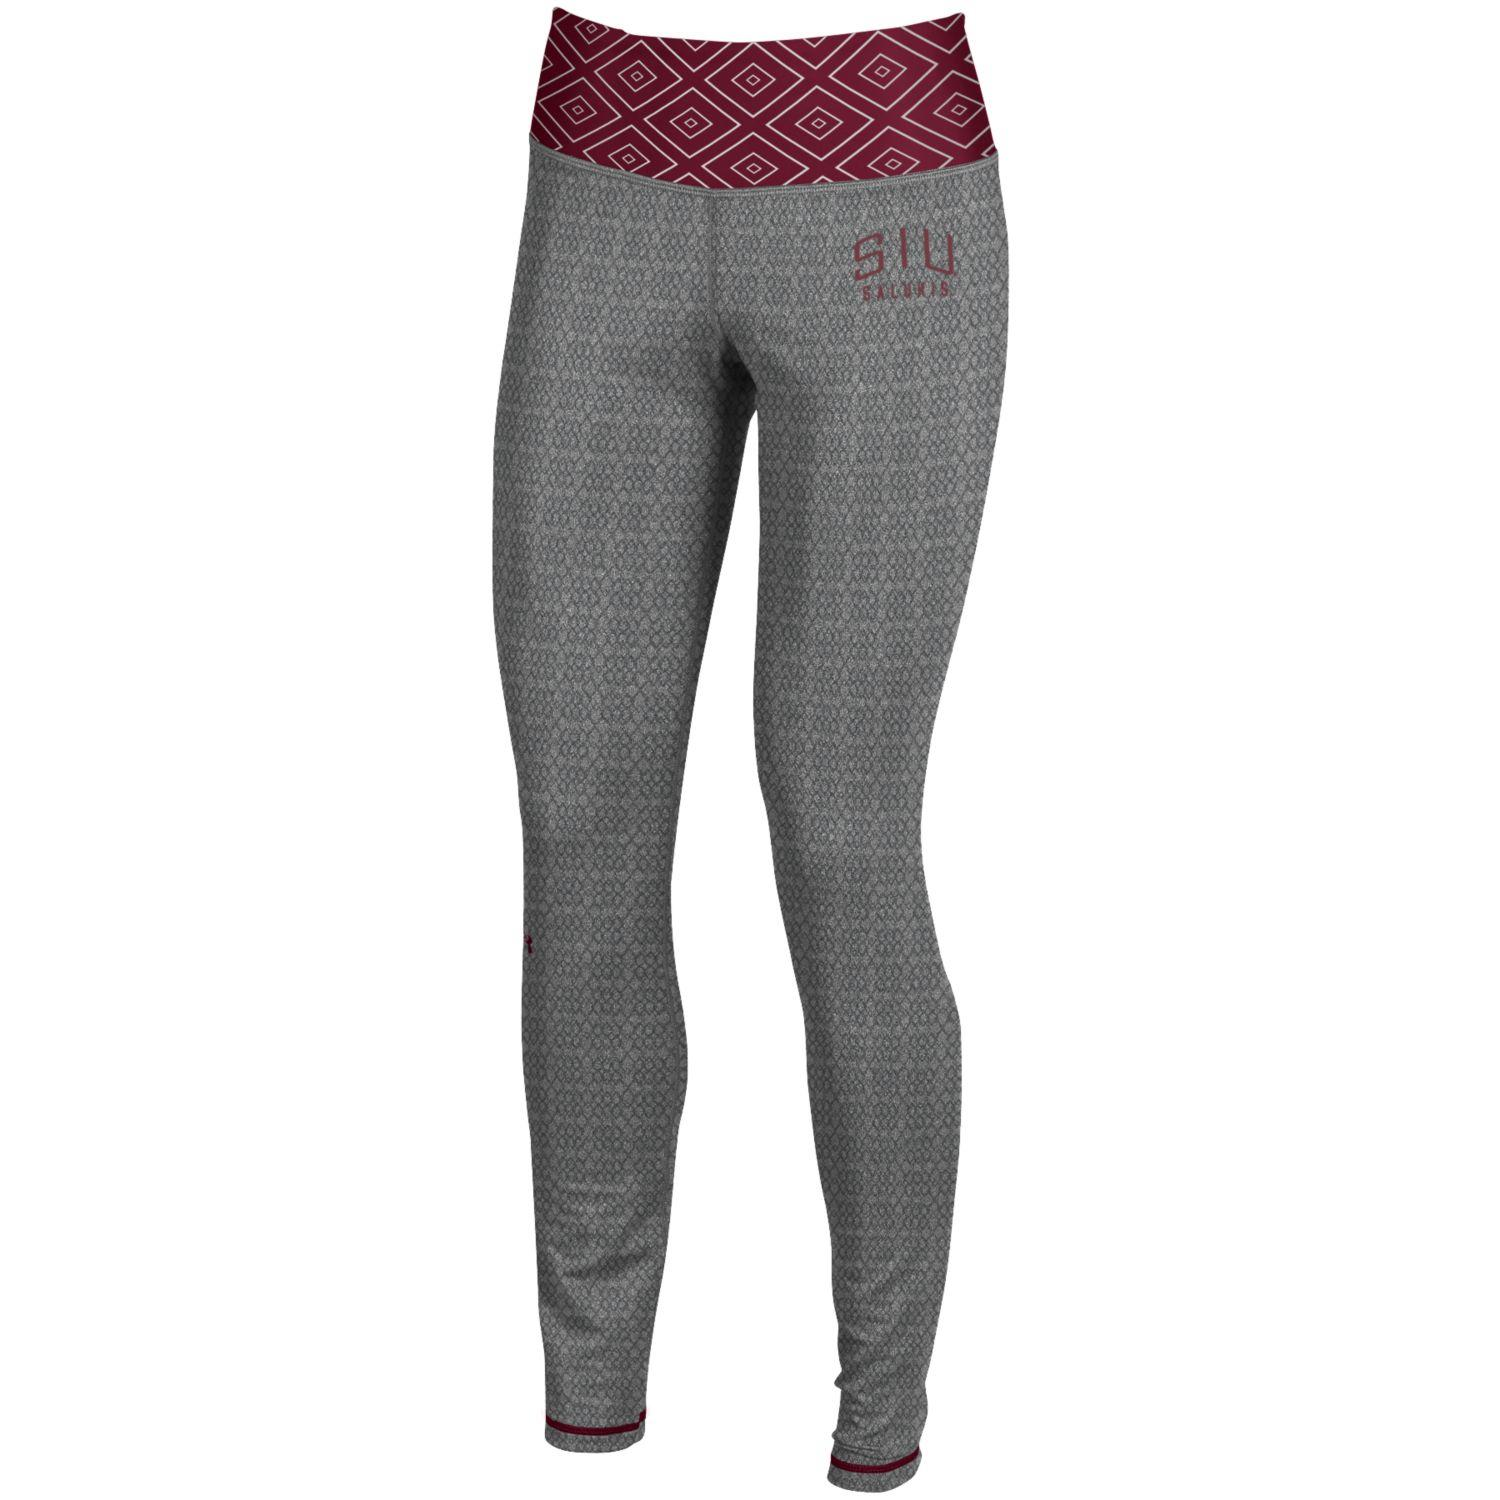 Image for the UNDER ARMOUR® SIU SALUKIS FLEX JAQUARD STRAIGHT LEGGING product